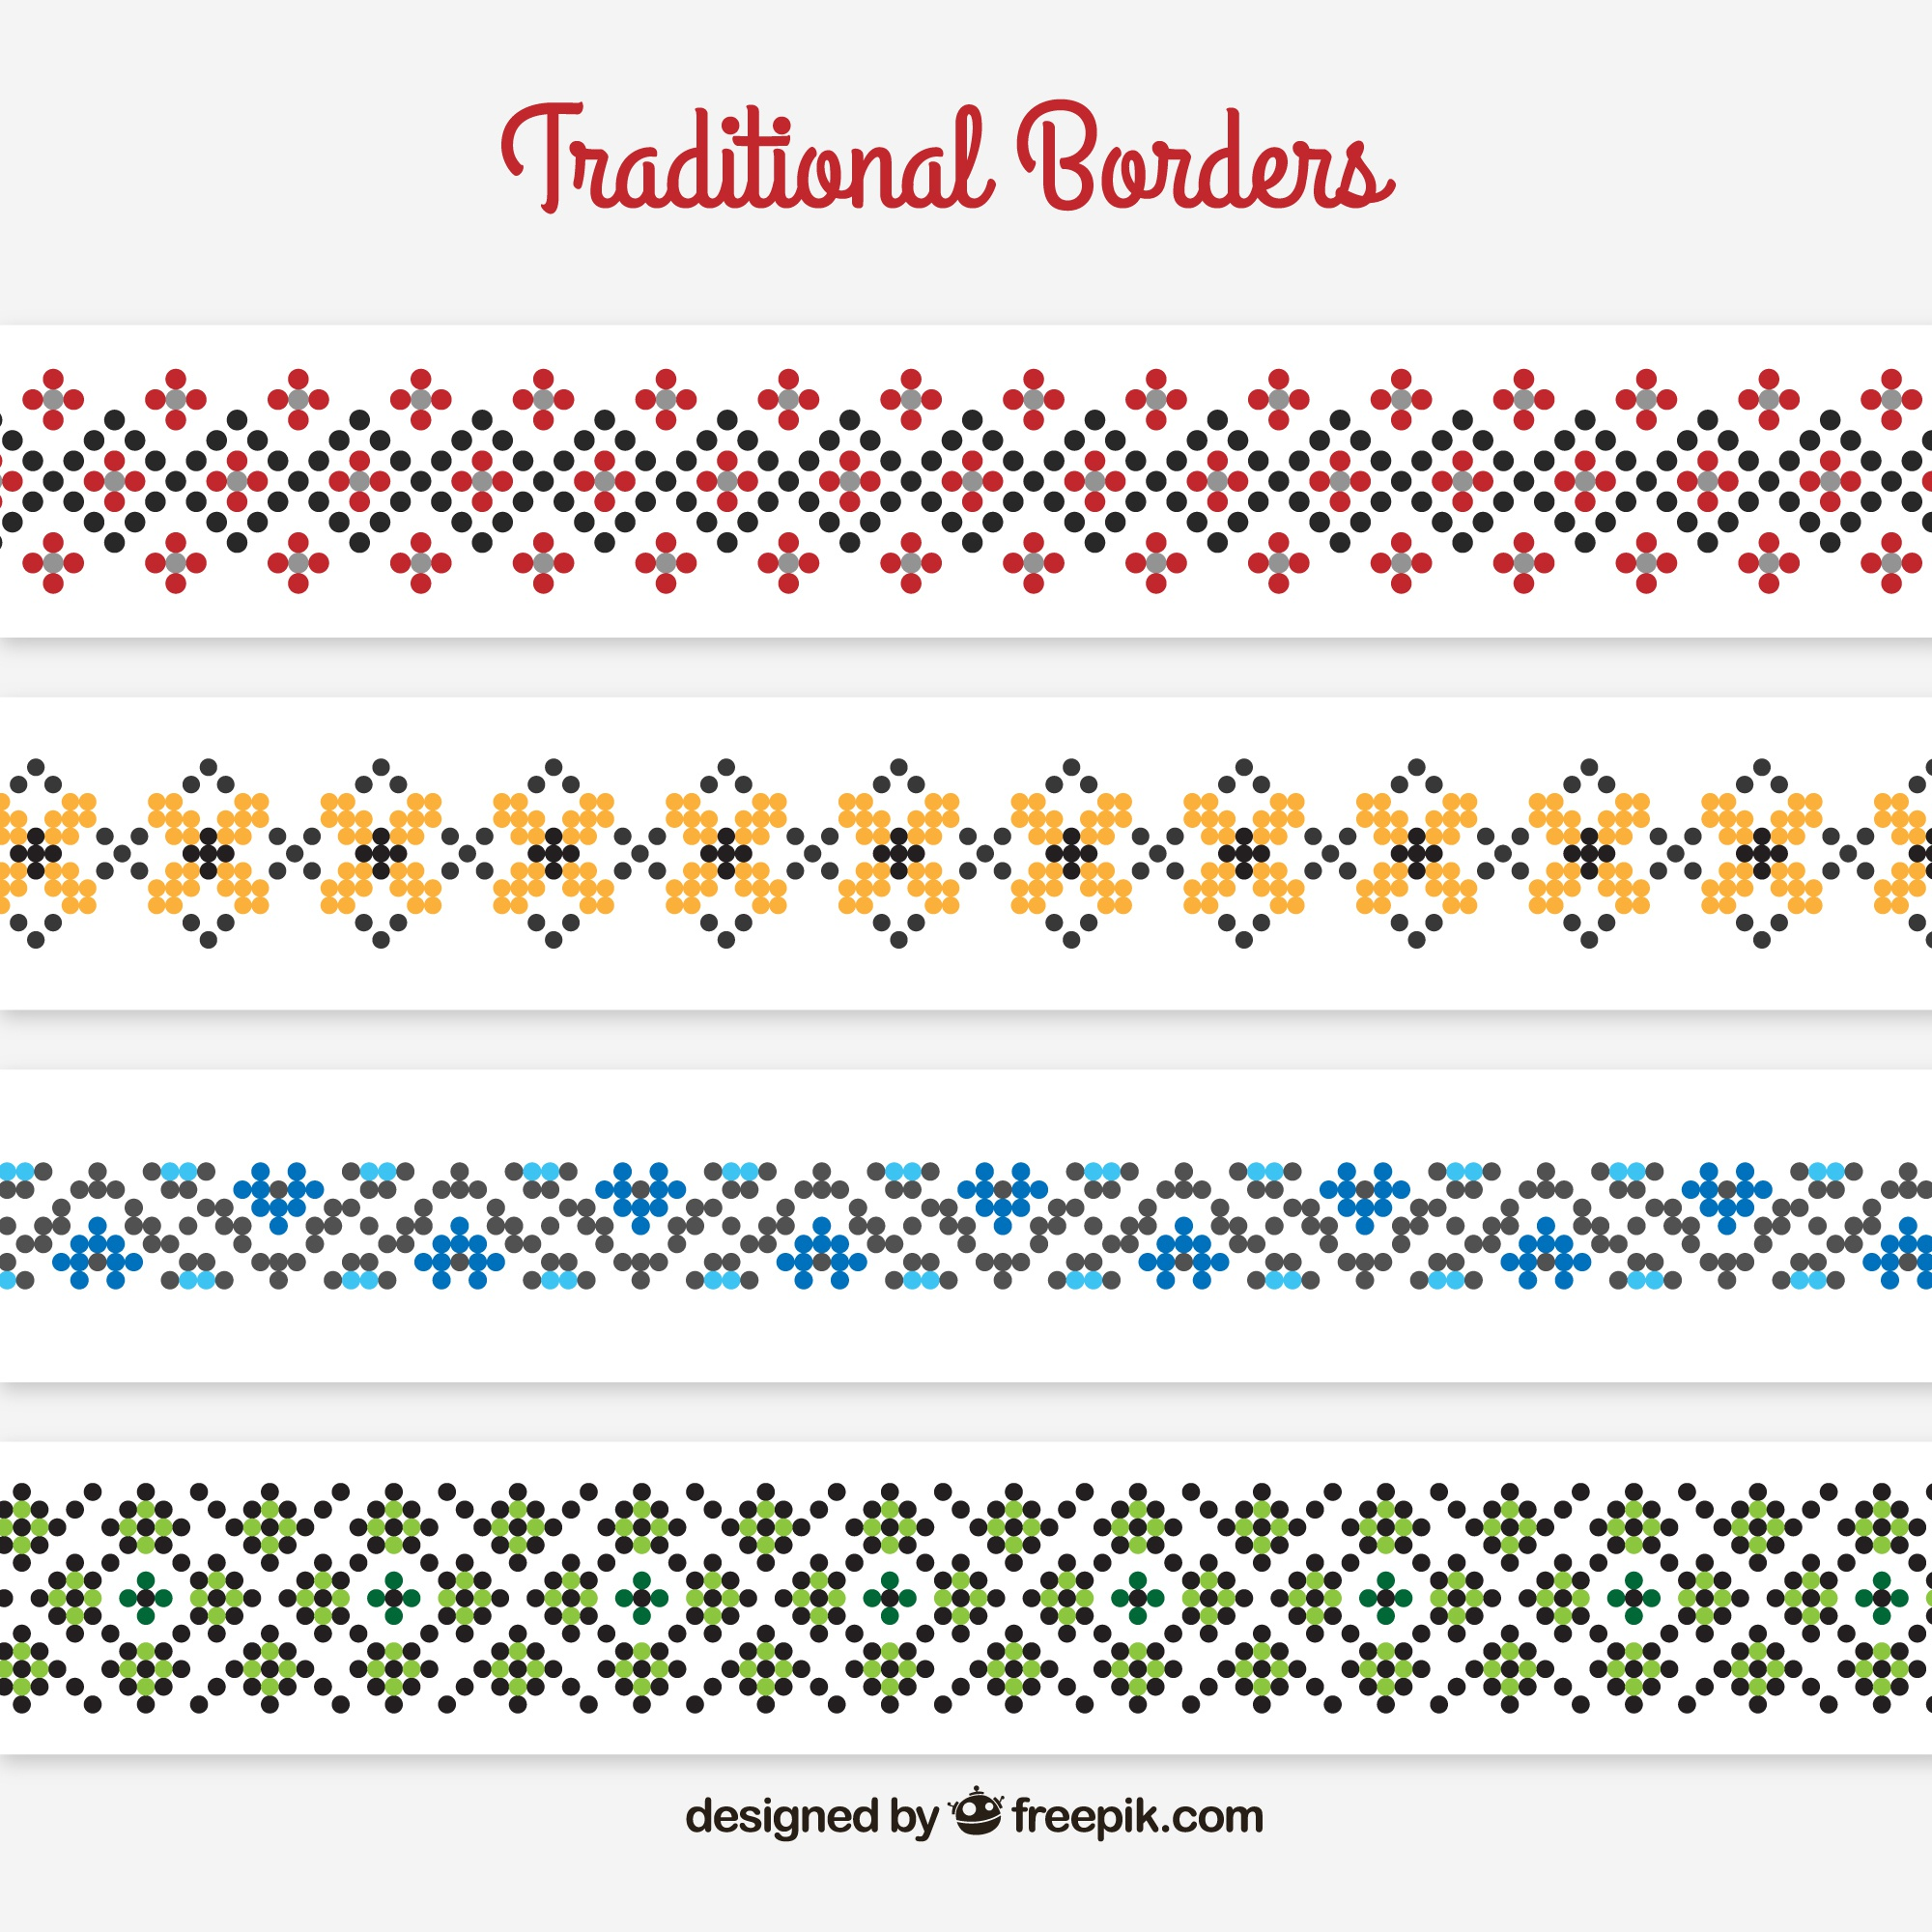 Traditional borders